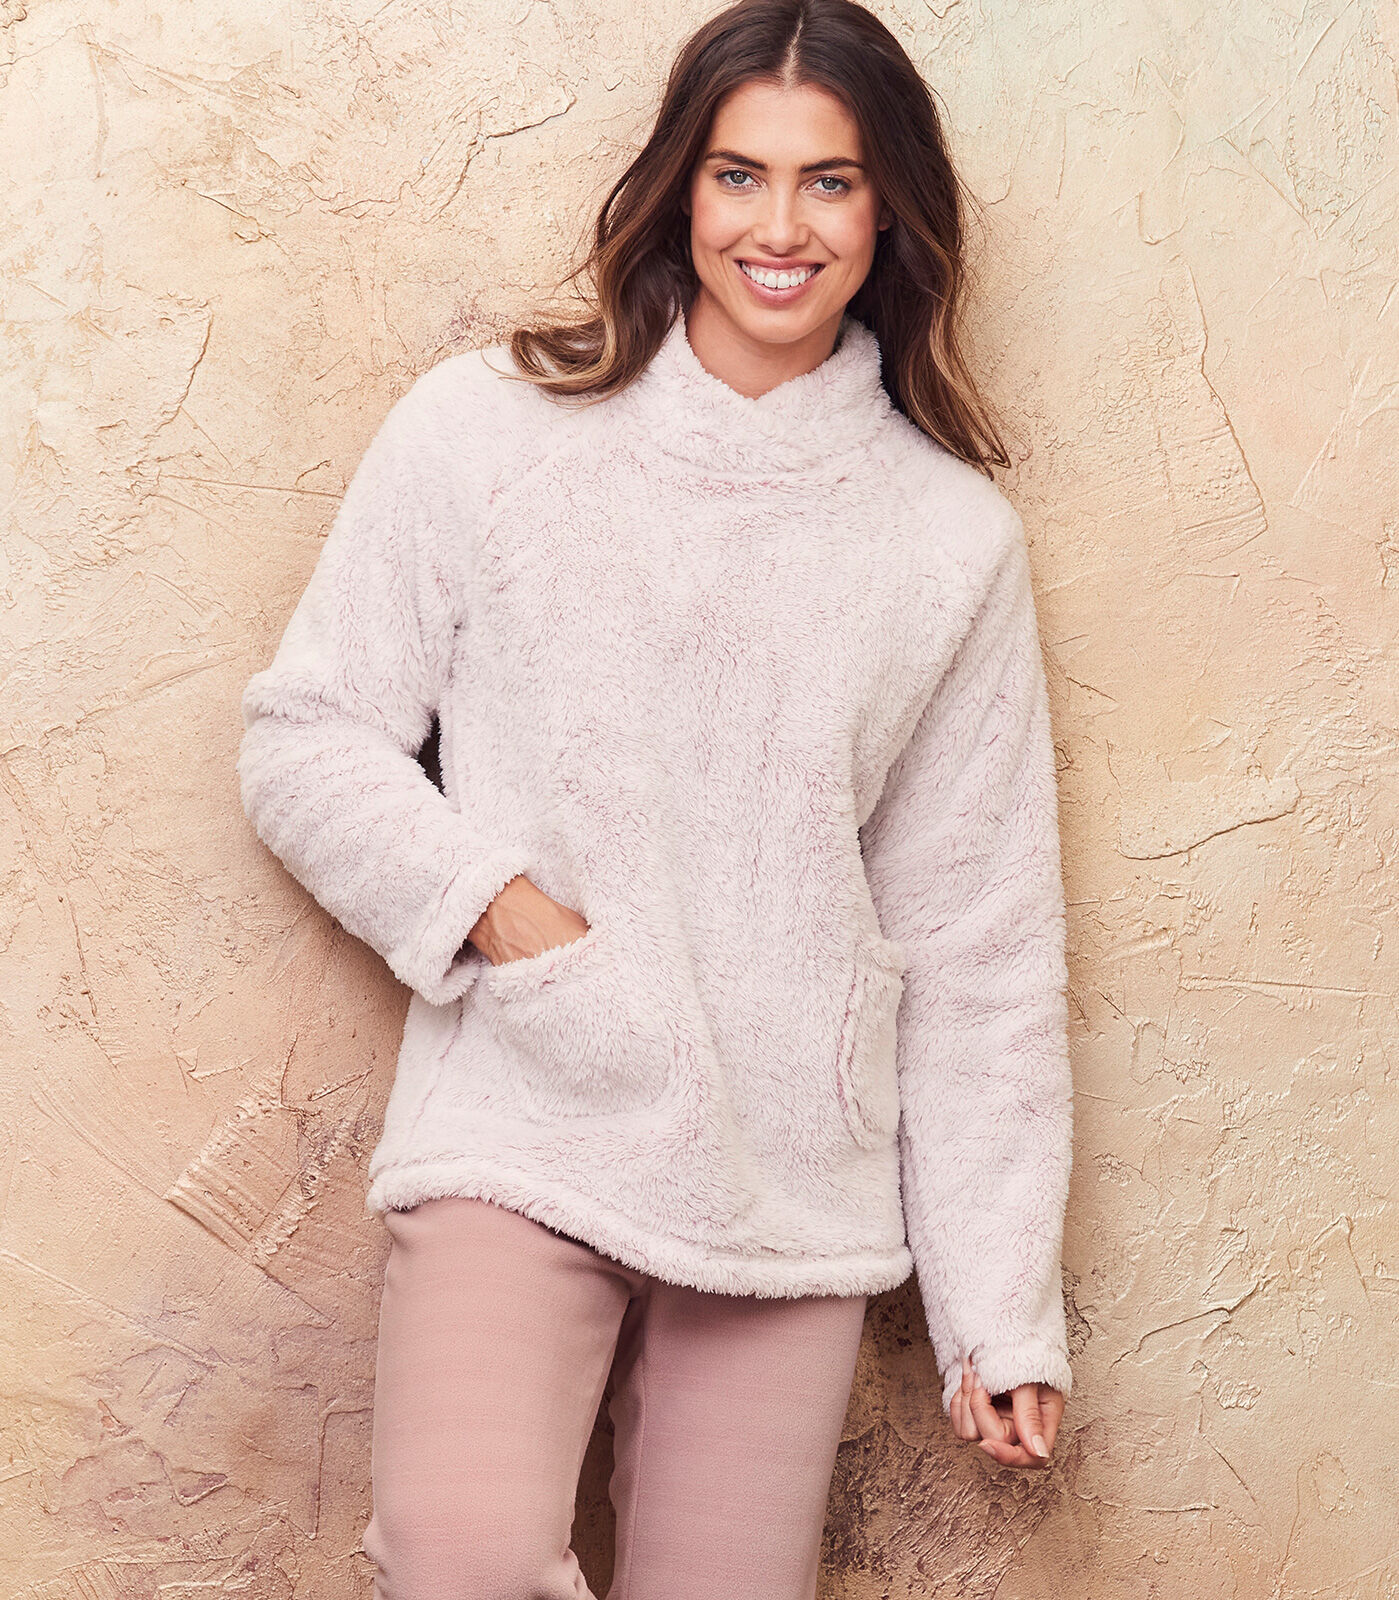 Cosy Nights In | Fleece Top | By Cotton Traders